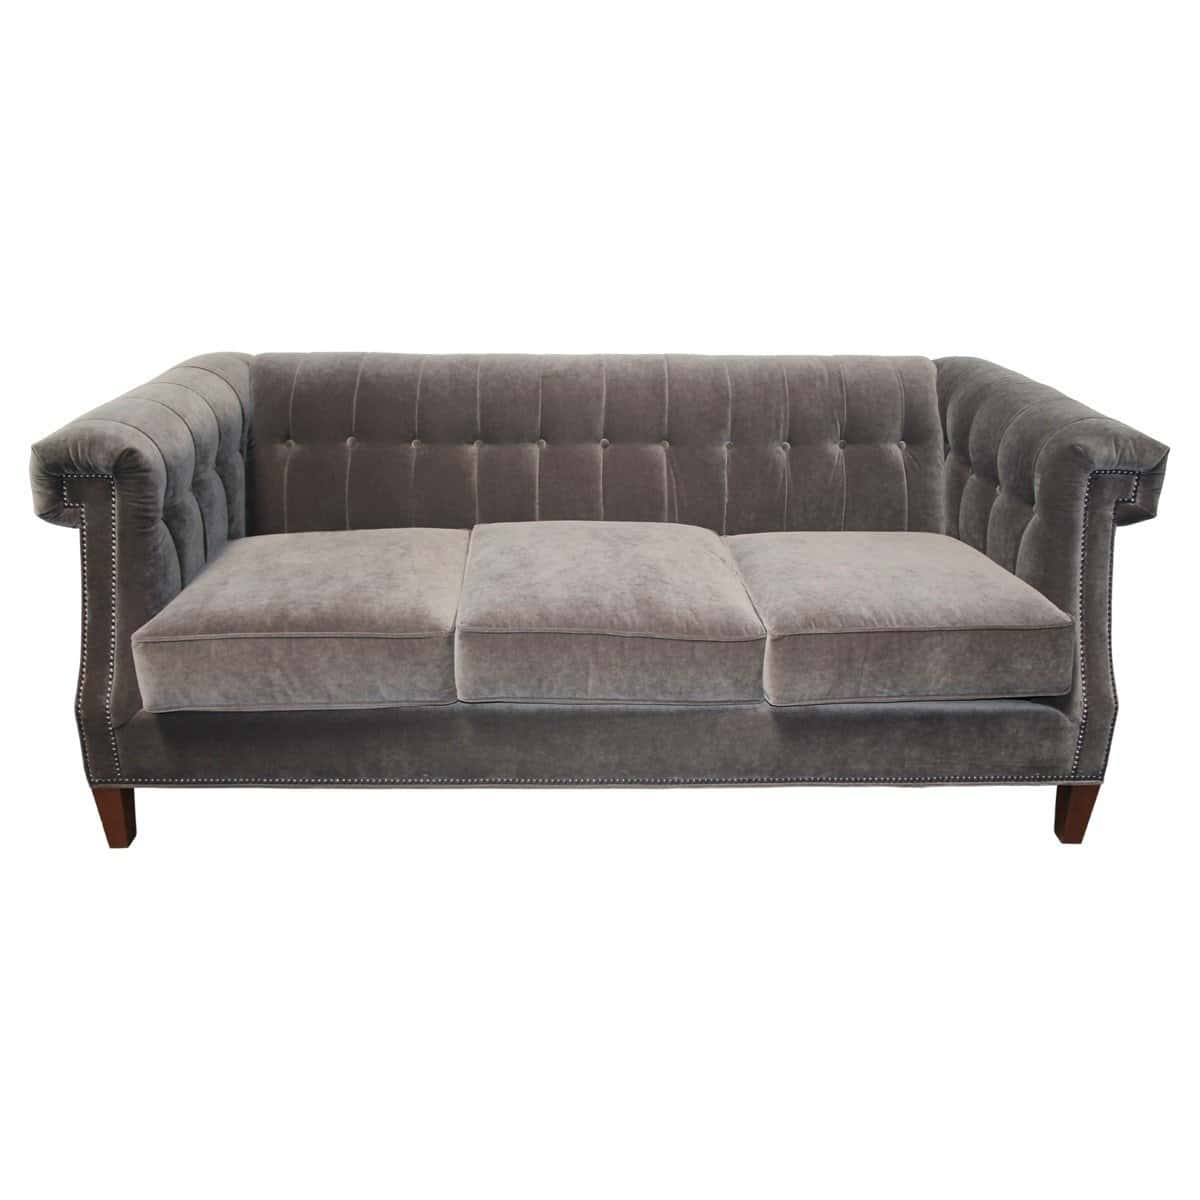 Tufted Velvet Sofa Image